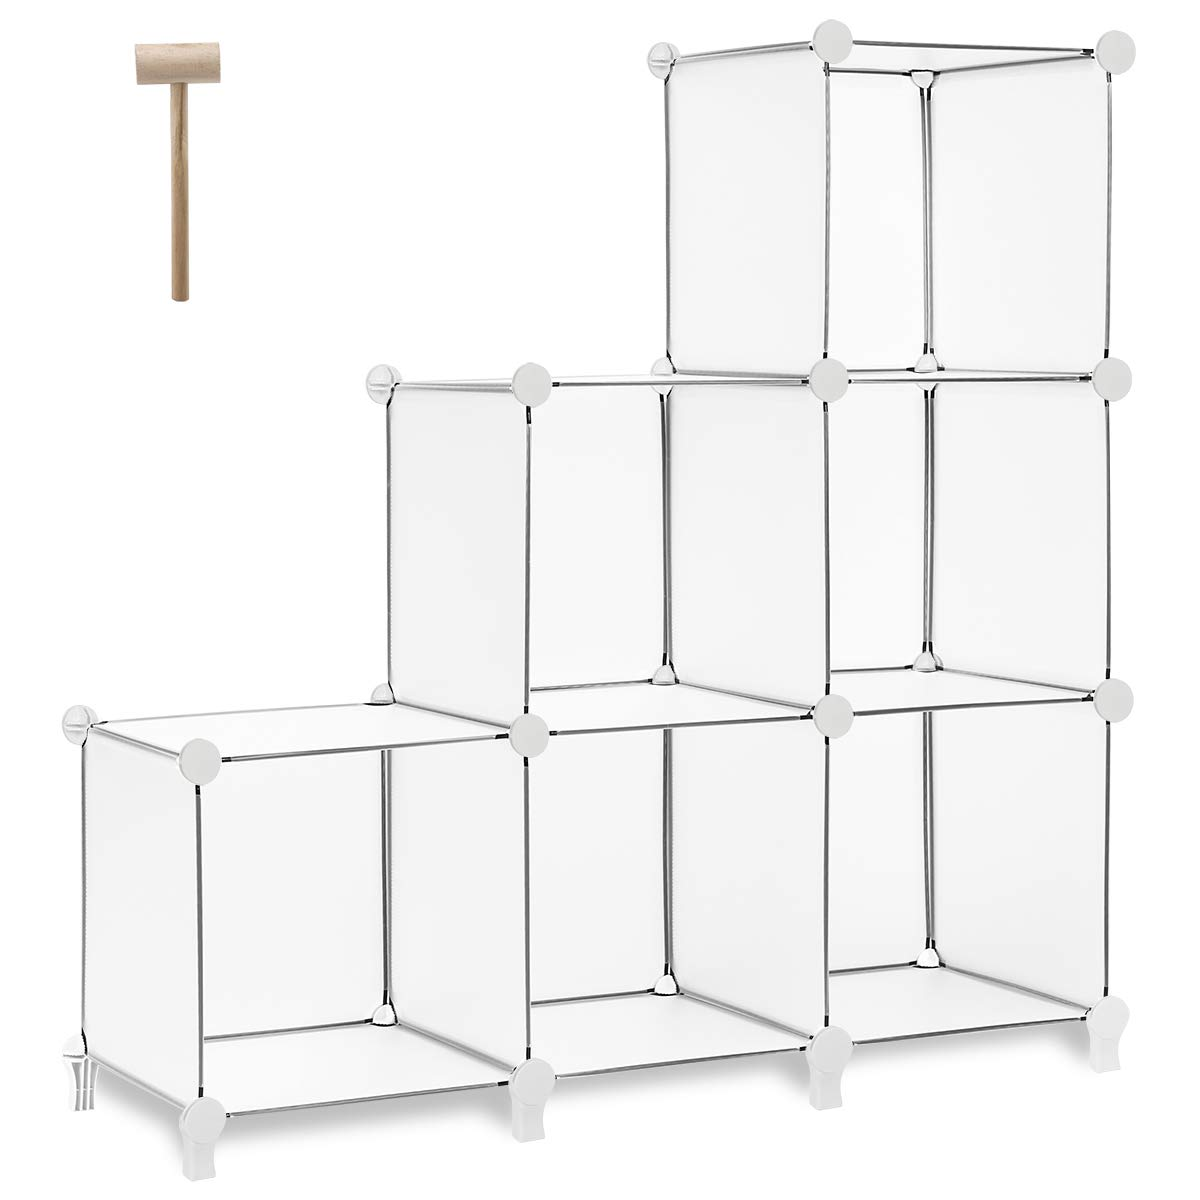 TomCare Cube Storage 6-Cube Bookshelf Closet Organizer Storage Shelves Shelf Cubes Organizer Plastic Square Book Shelf Bookcase DIY Closet Cabinet Organizer Shelving for Home Office Bedroom, White